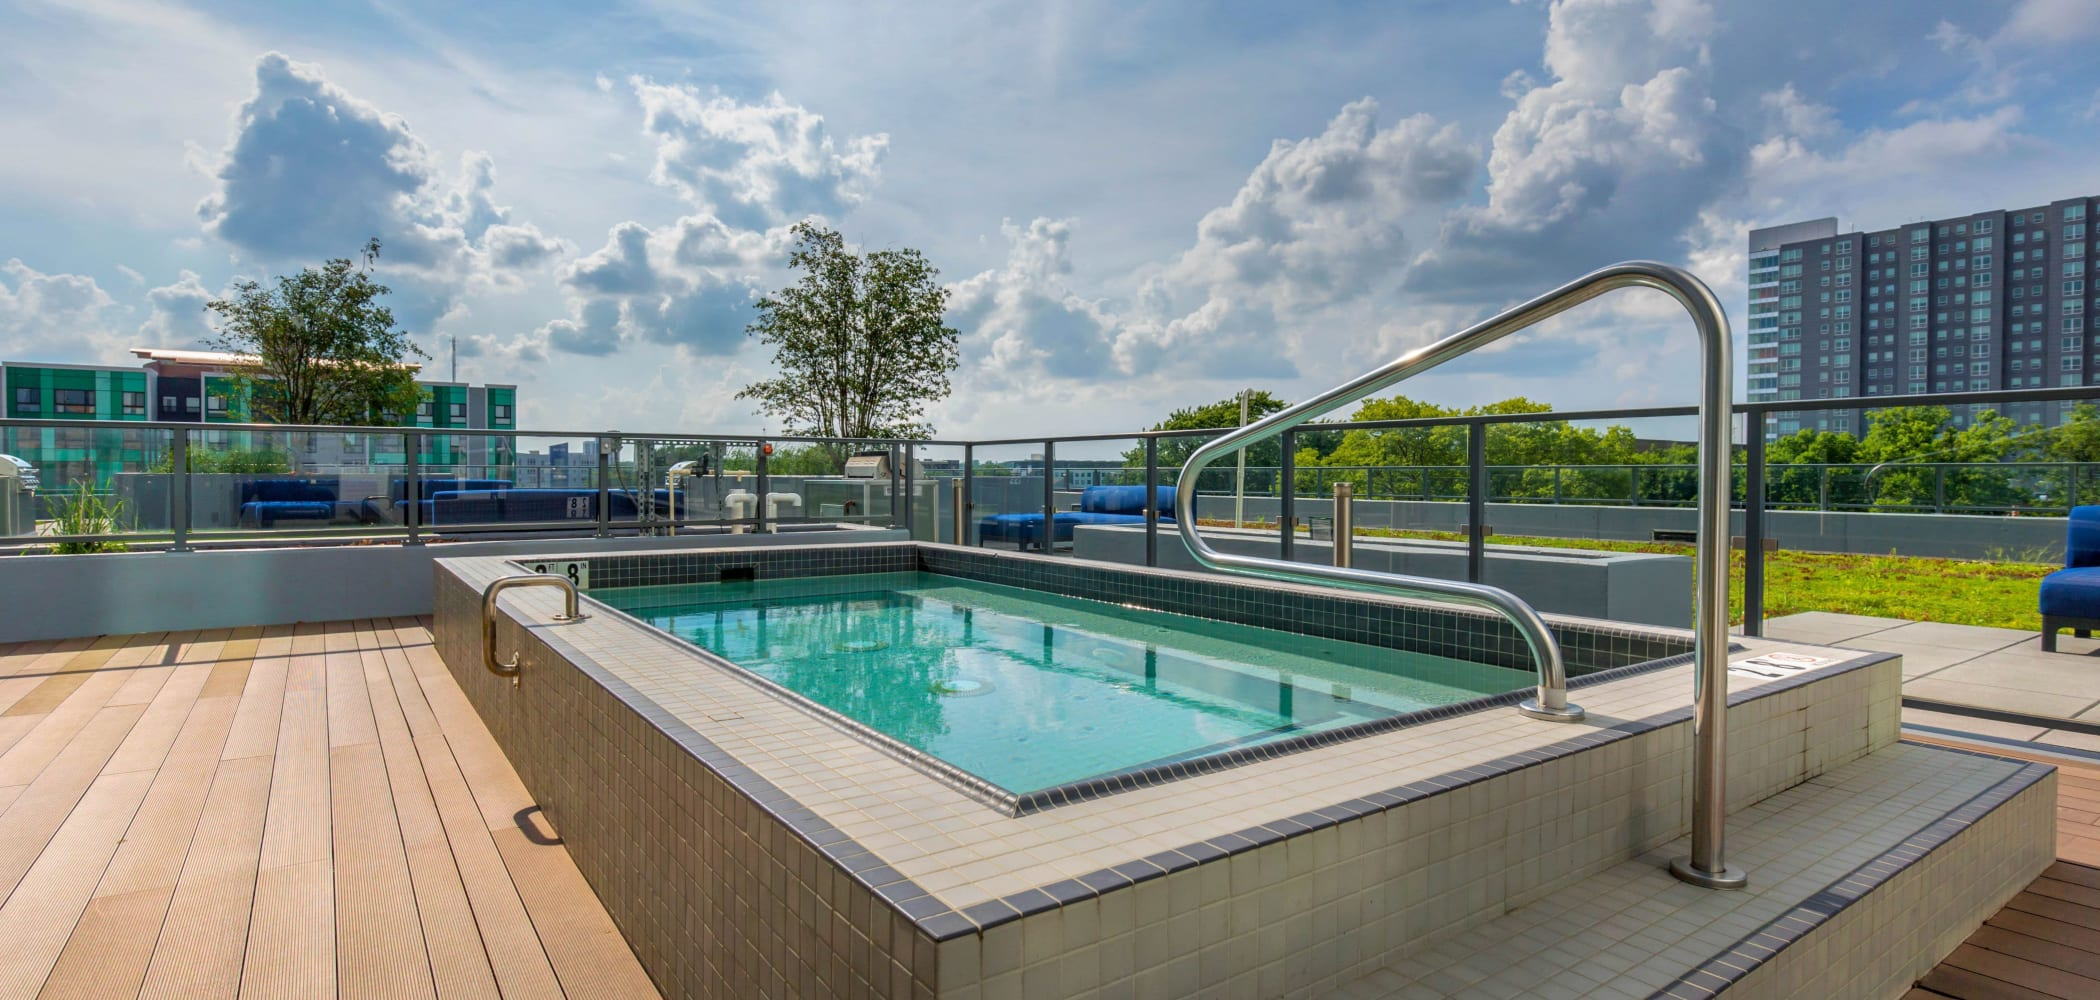 Sparkling swimming pool at HERE Champaign in Champaign, Illinois